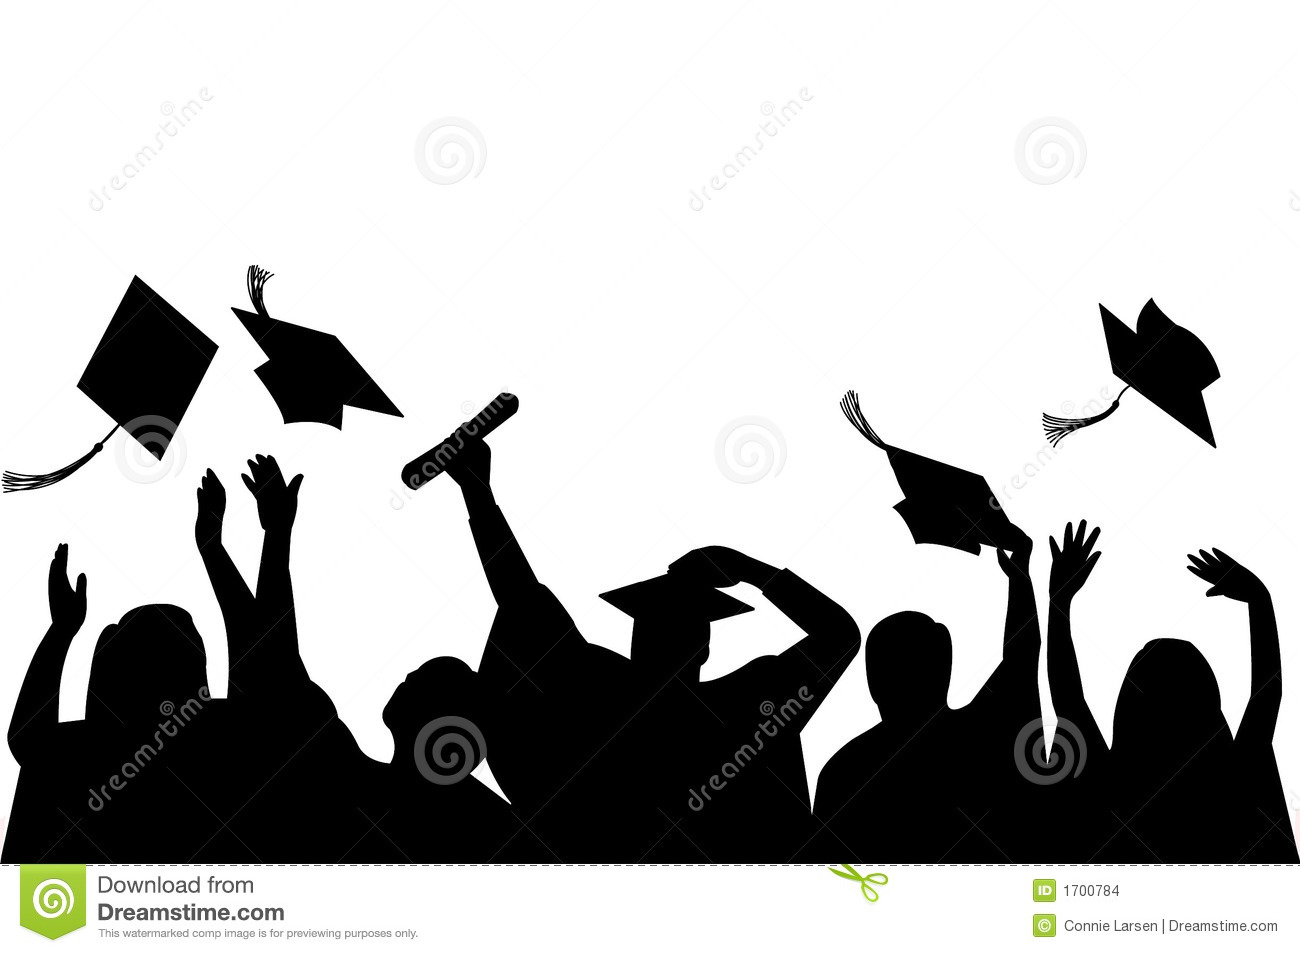 Illustration Of A Group Of Graduates Tossing Their Caps In Celebration